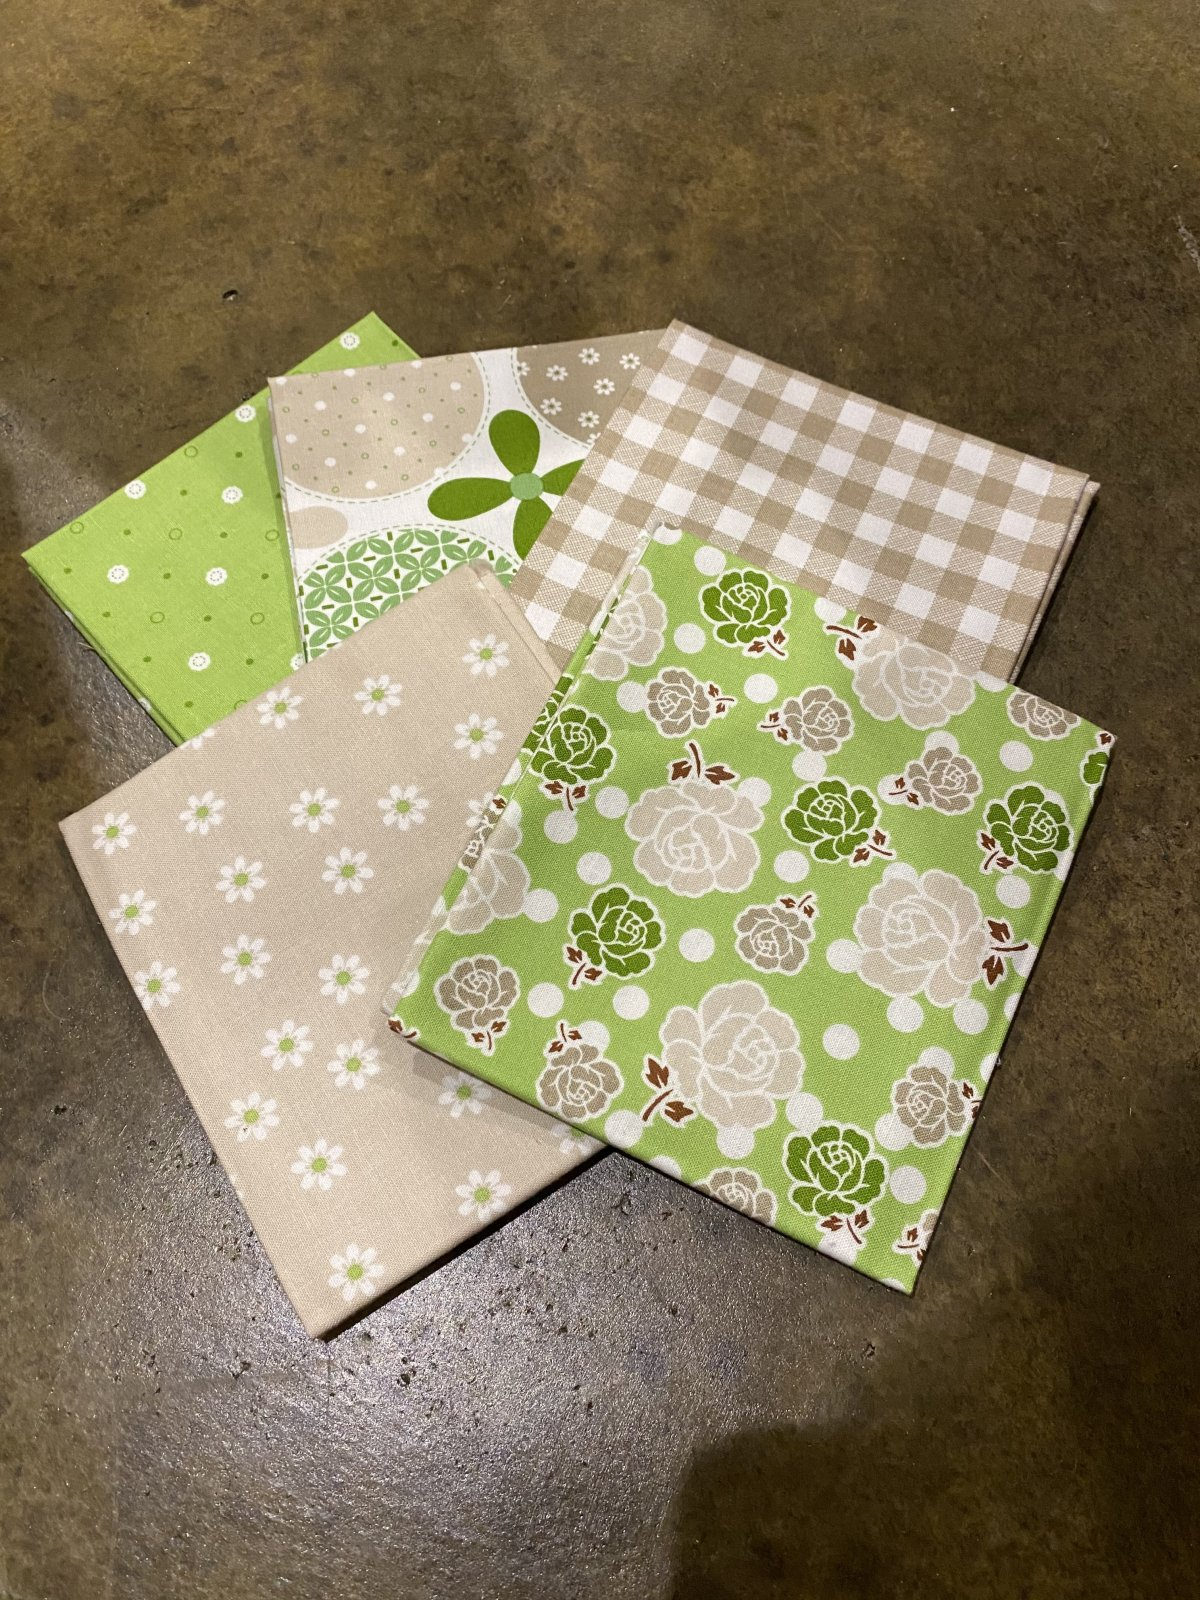 Polka Dot Stitches by Lori Holt - Fat Quarter Bundle - 5  Piece Green